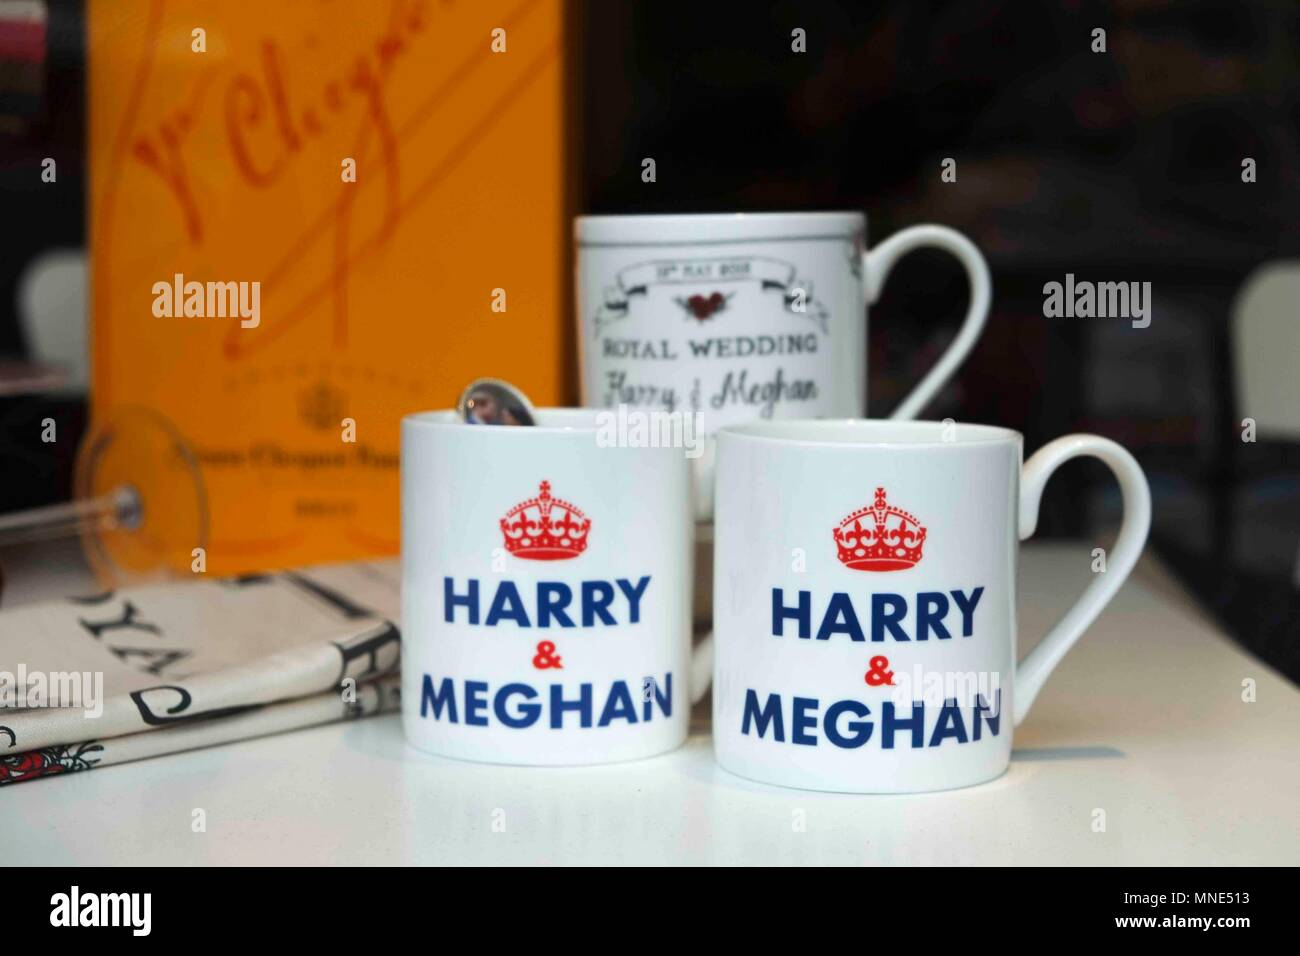 Harry Wedding Photosamp; Royal Memorabilia Meghan Stock 8n0OwkPX